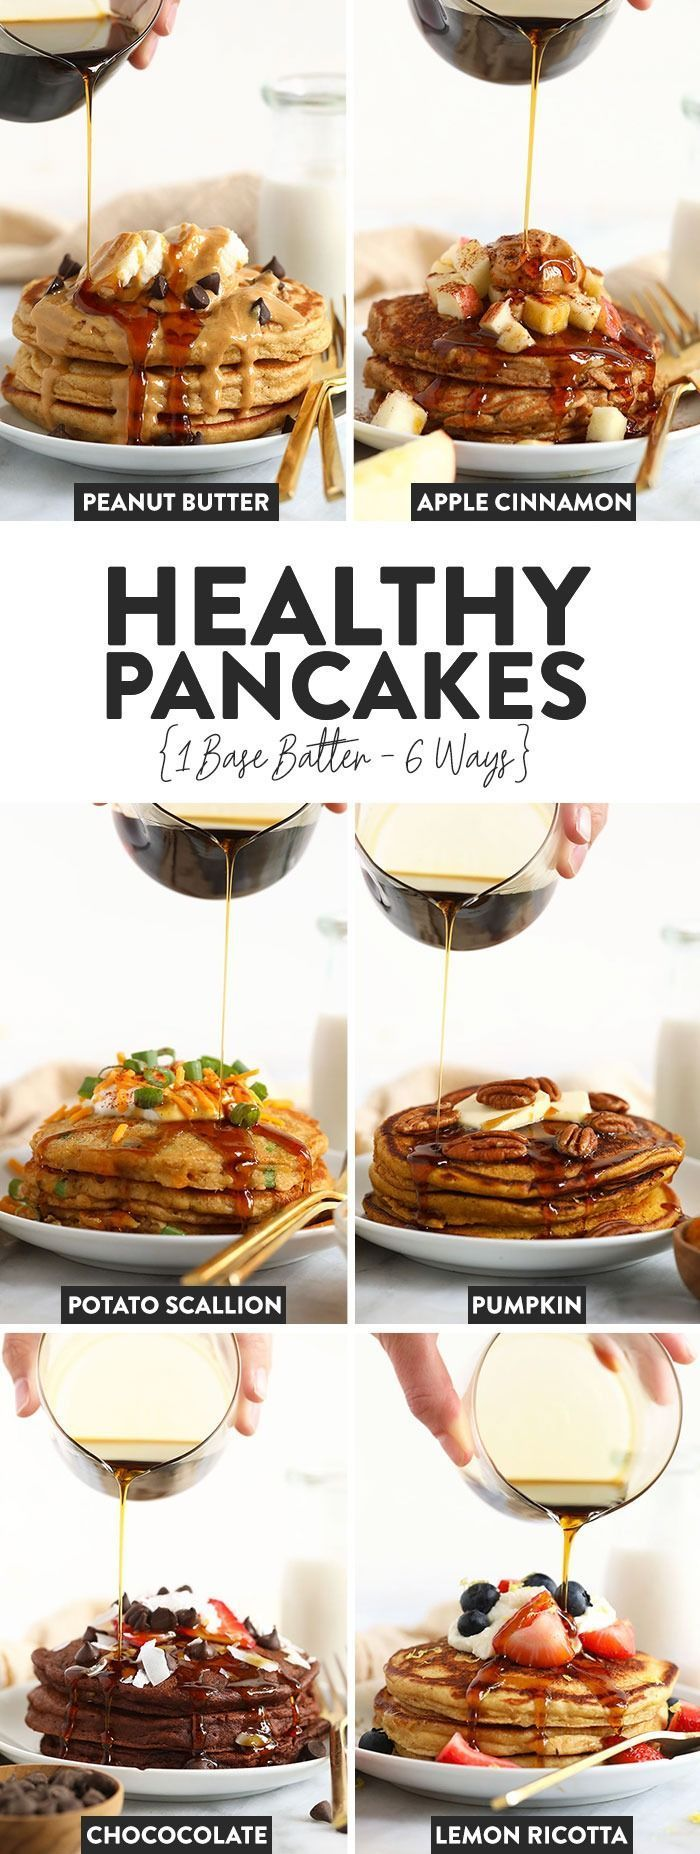 Photo of Healthy Pancakes 1 Base Batter – 6 Ways – Fit Foodie Finds